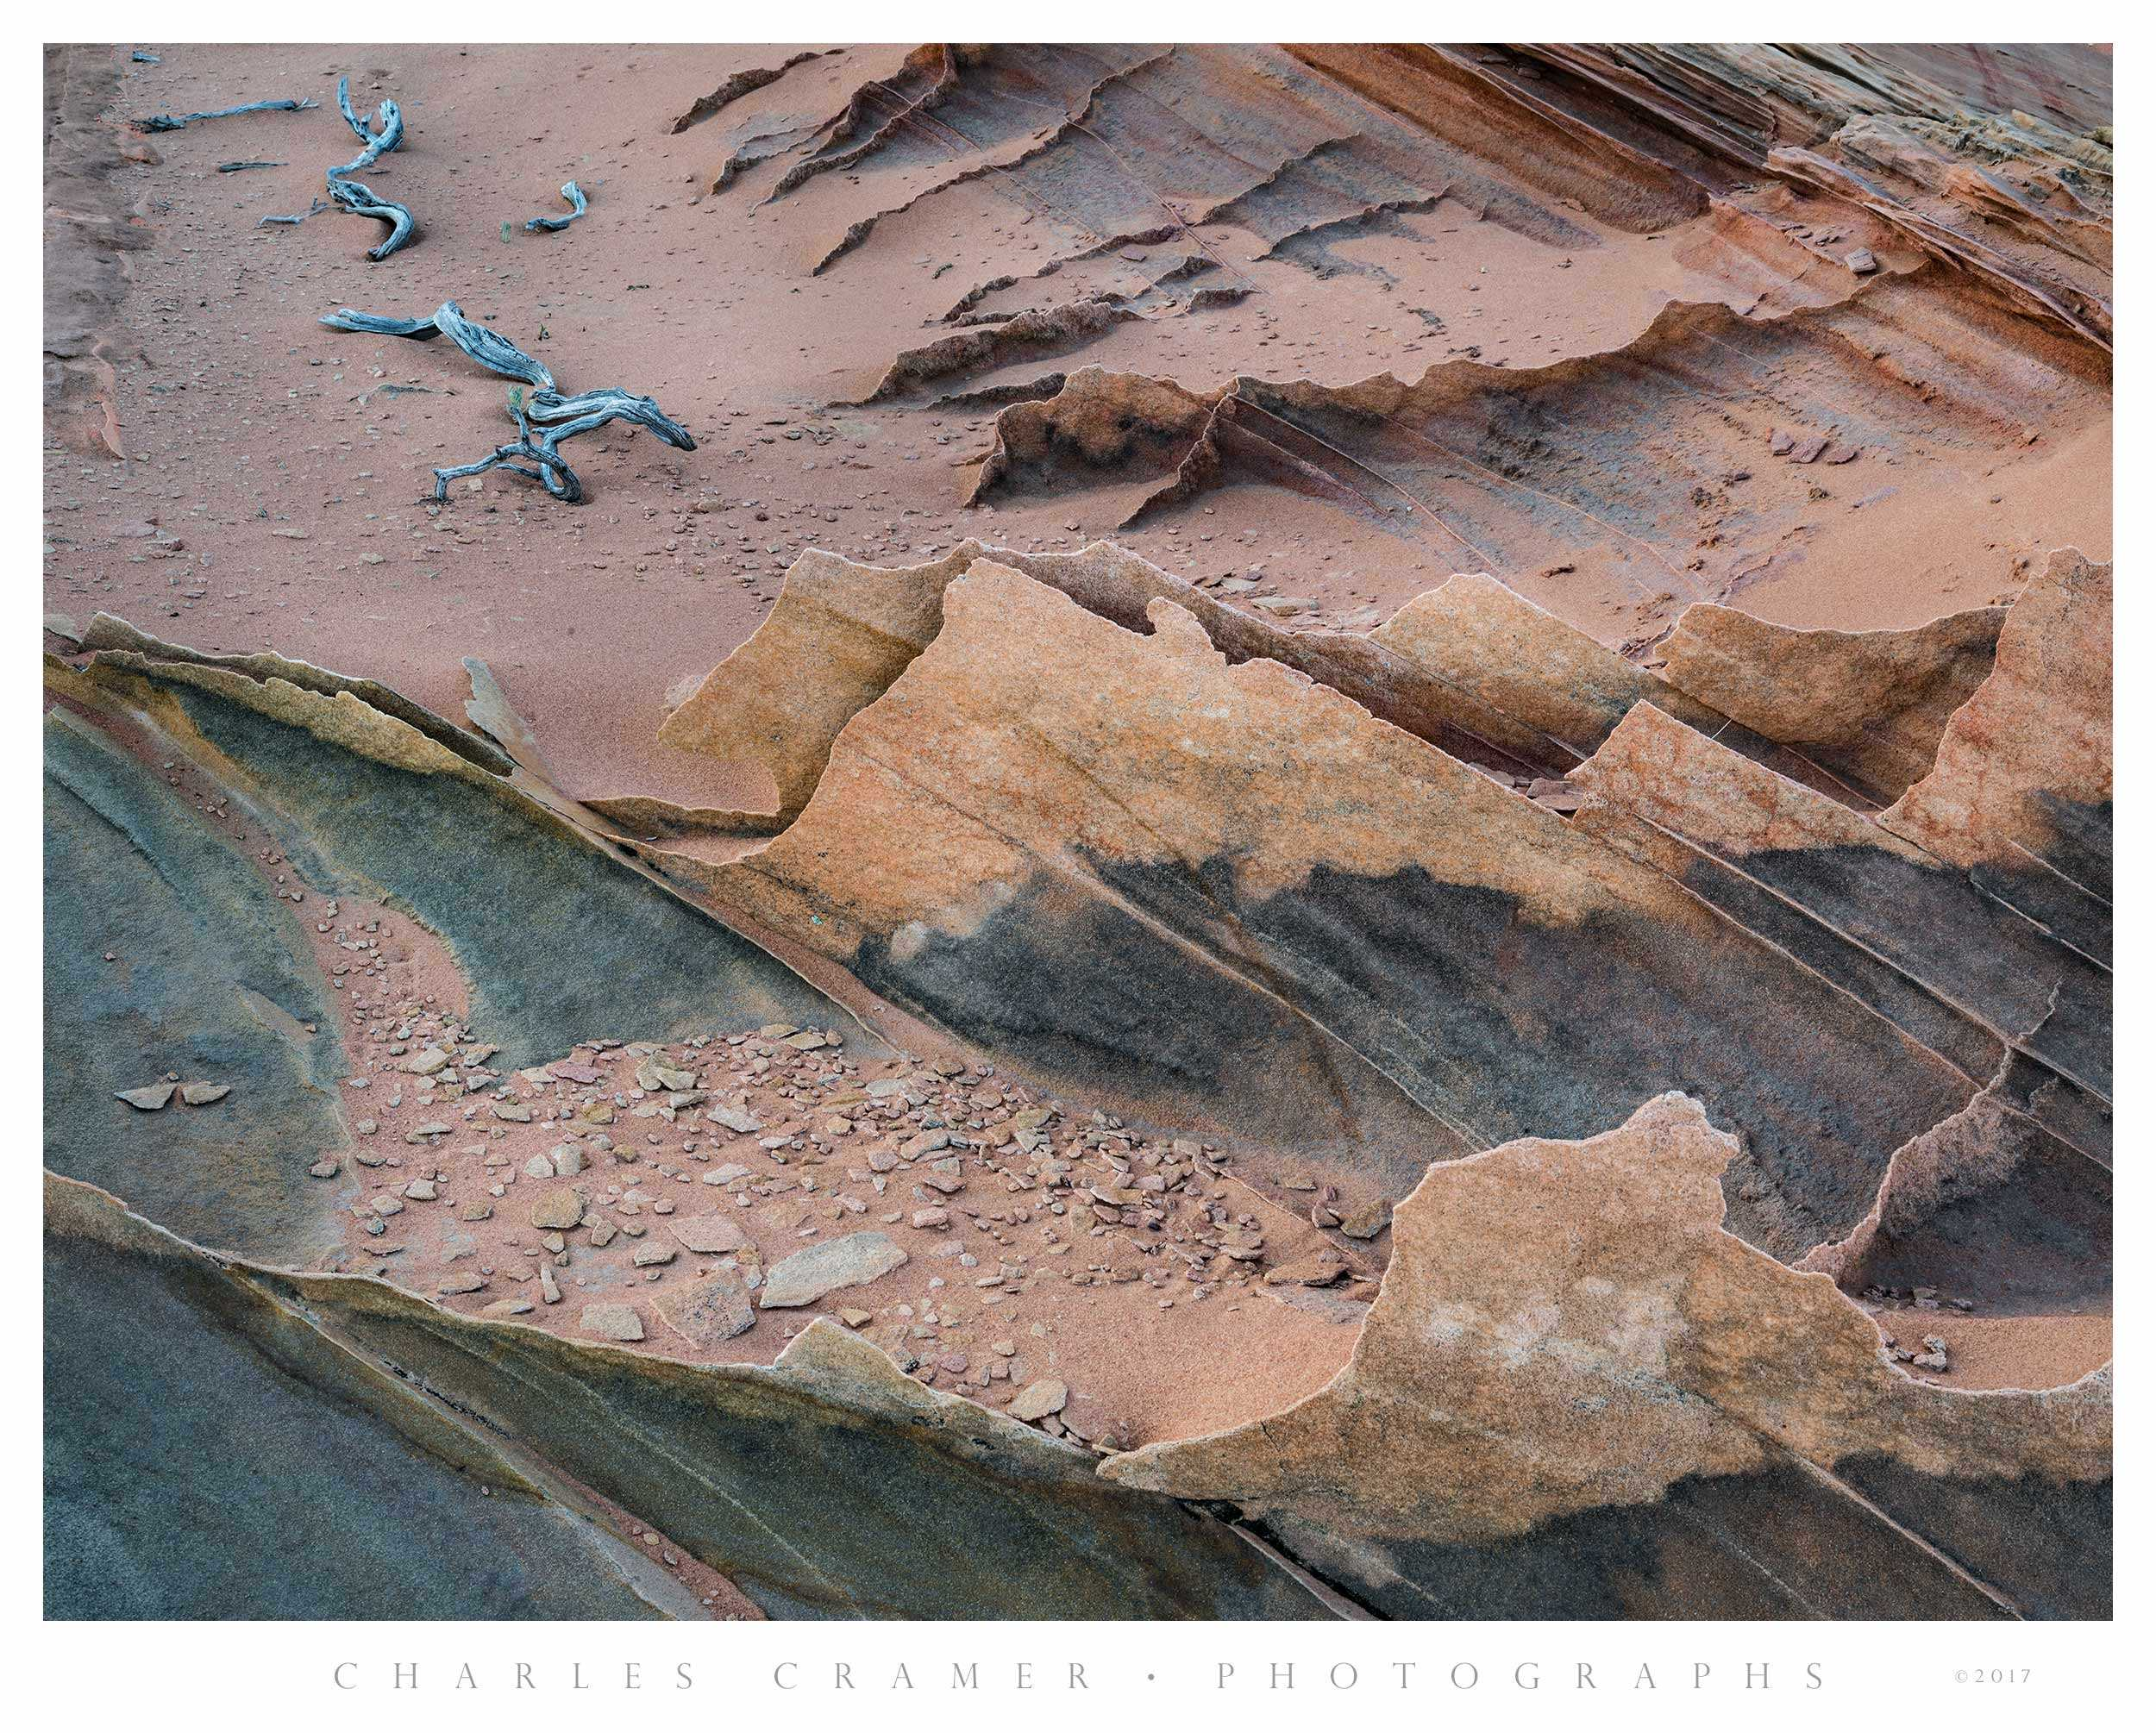 Fins and Snags, Paria Wilderness, Utah